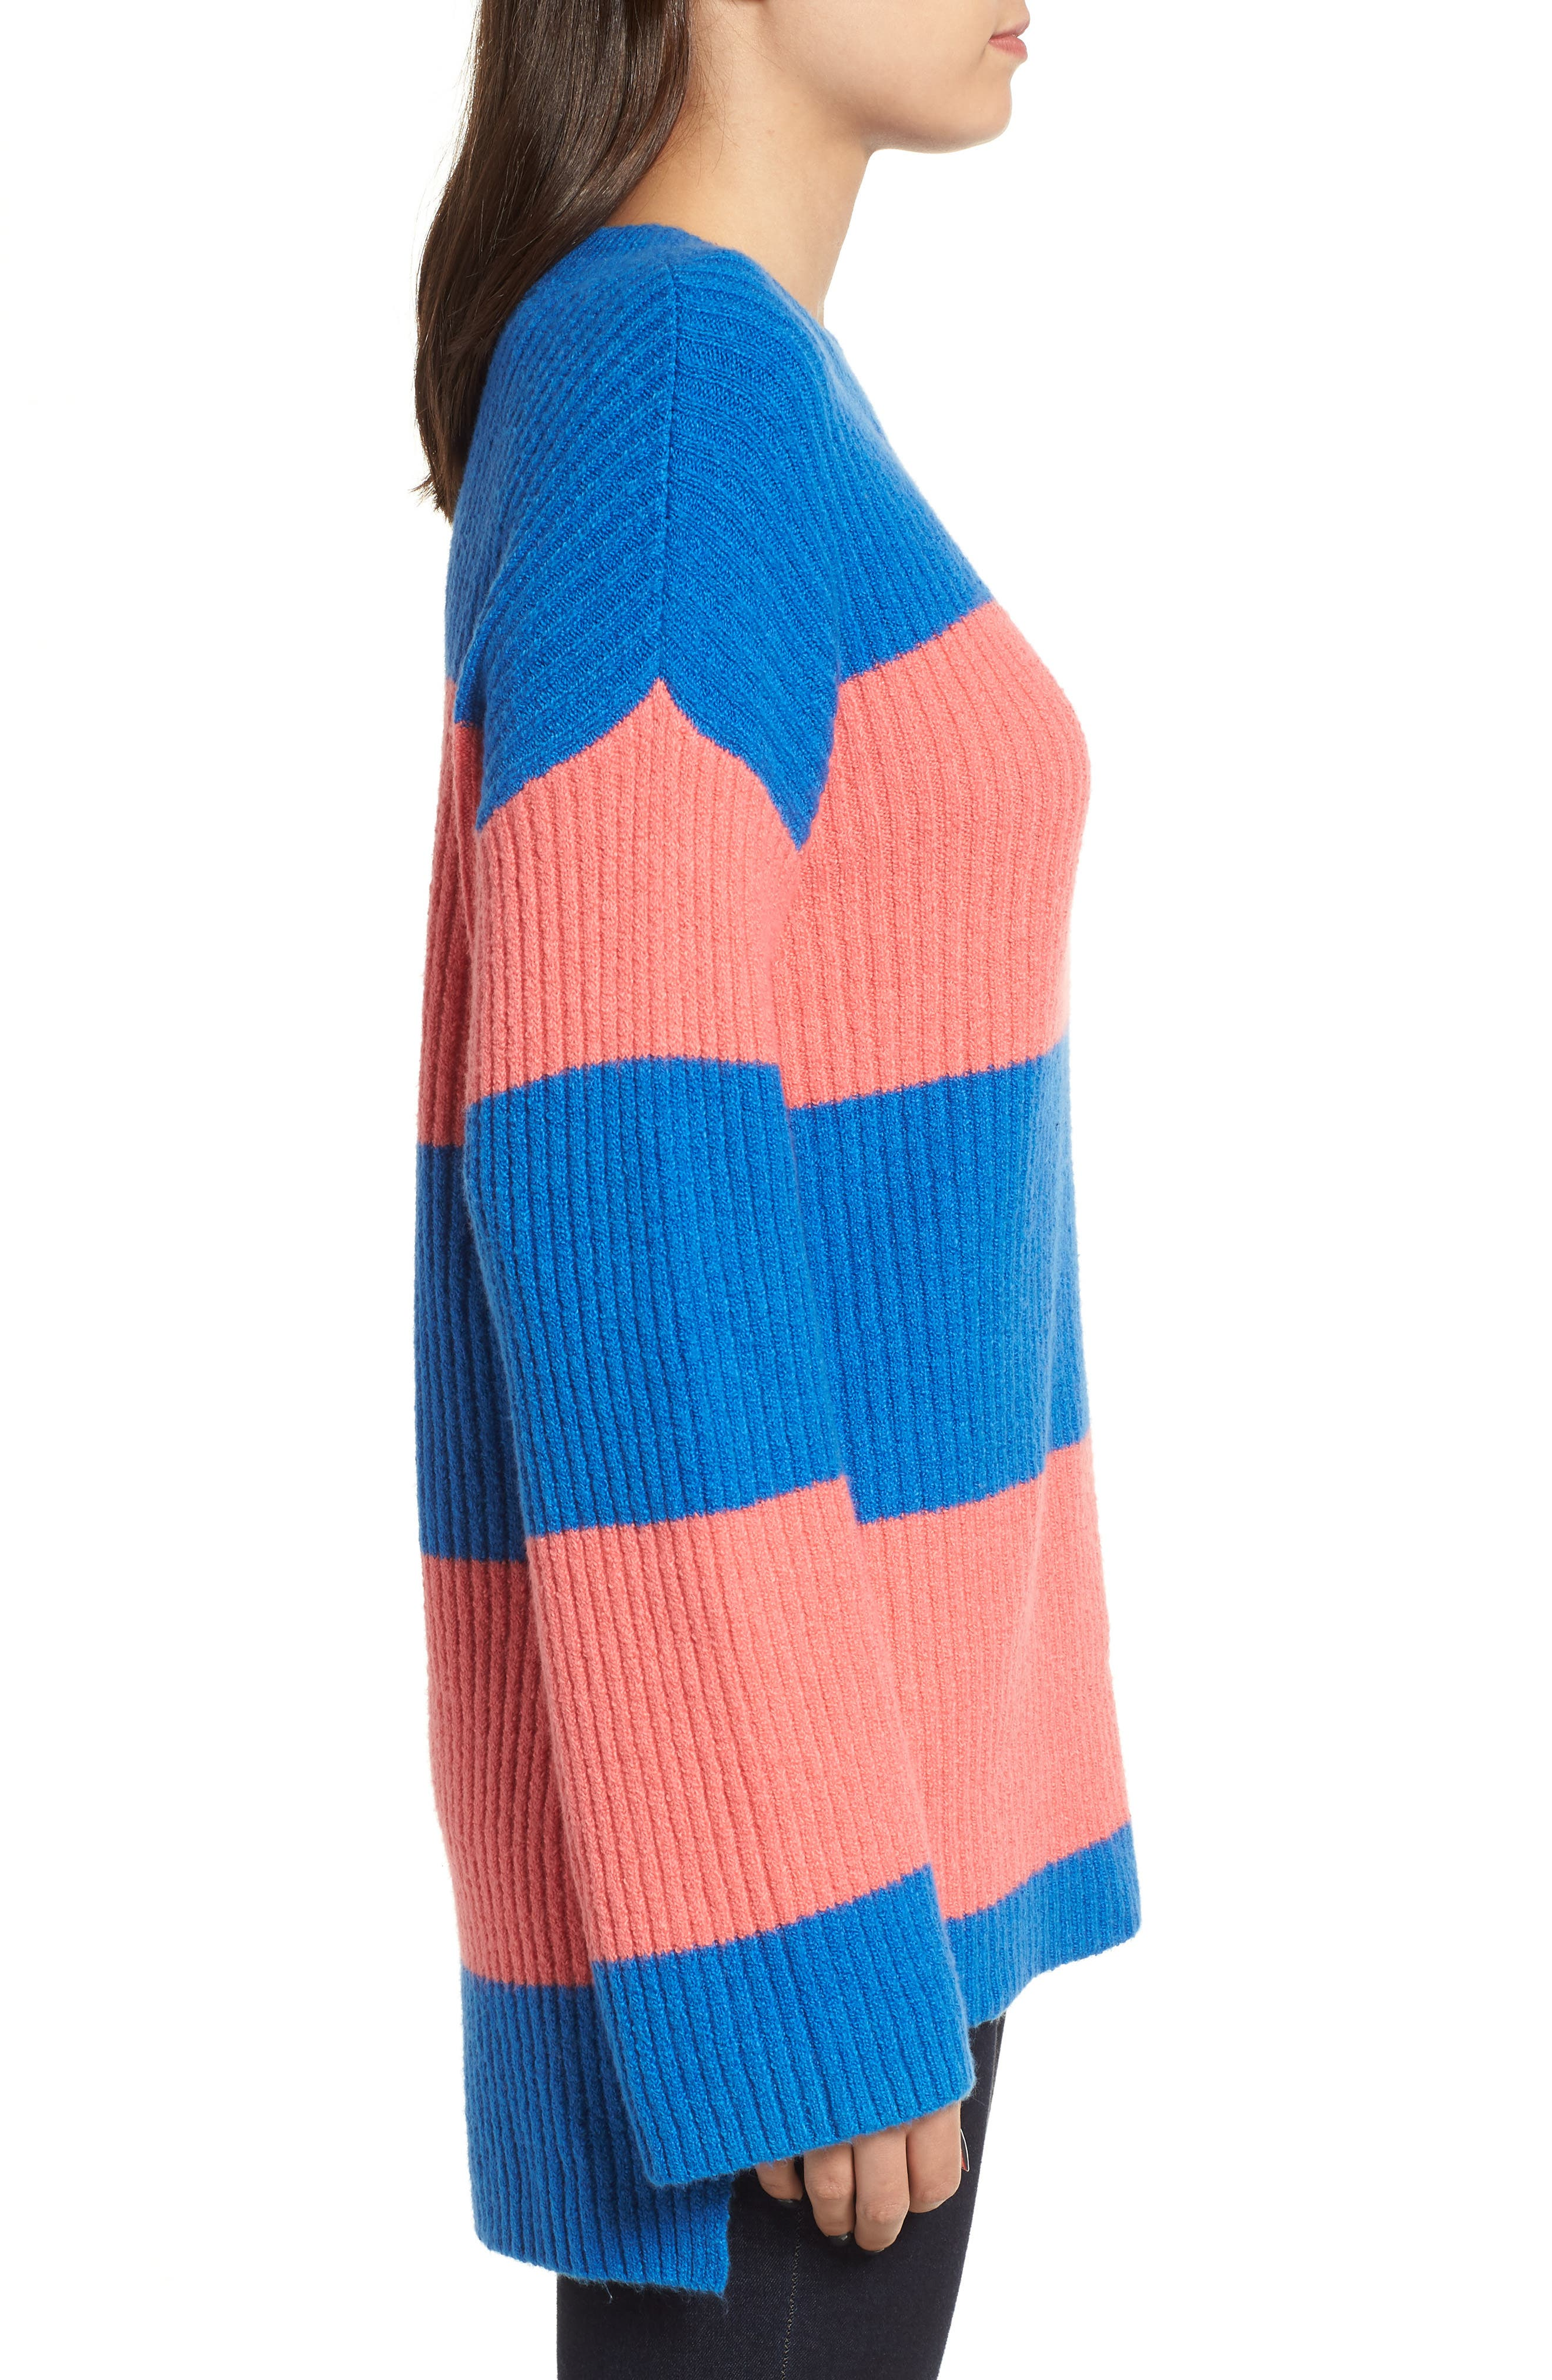 Rugby Stripe Sweater,                             Alternate thumbnail 4, color,                             BLUE BOAT COURTNEY STRIPE